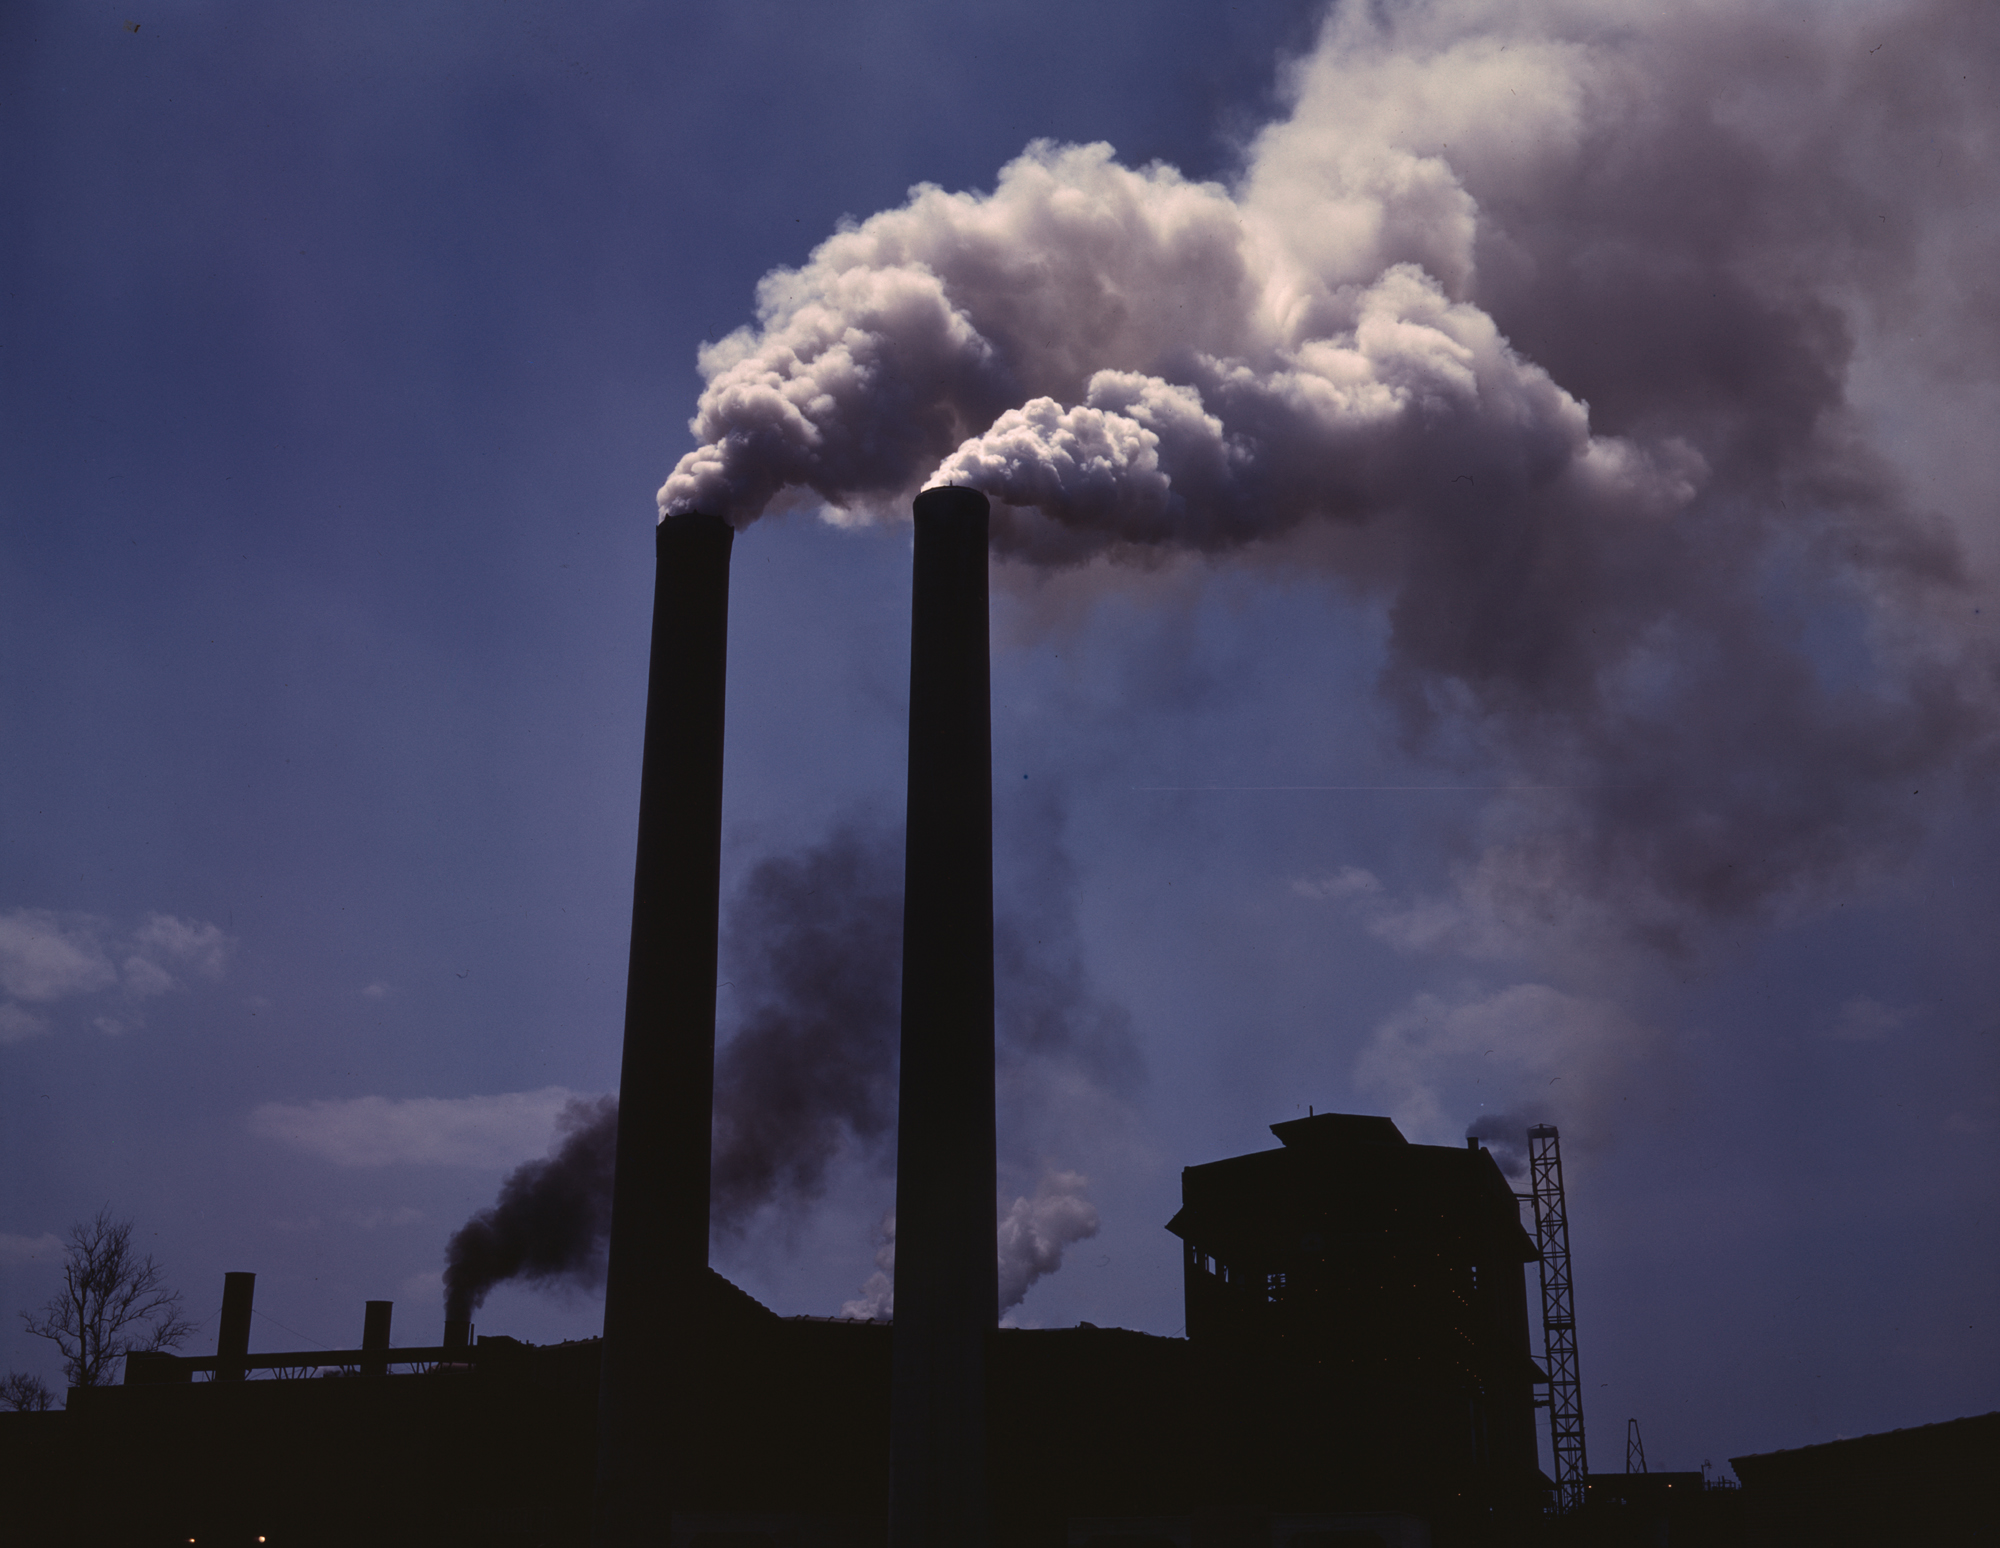 Difference Between Primary Pollutants and Secondary Pollutants